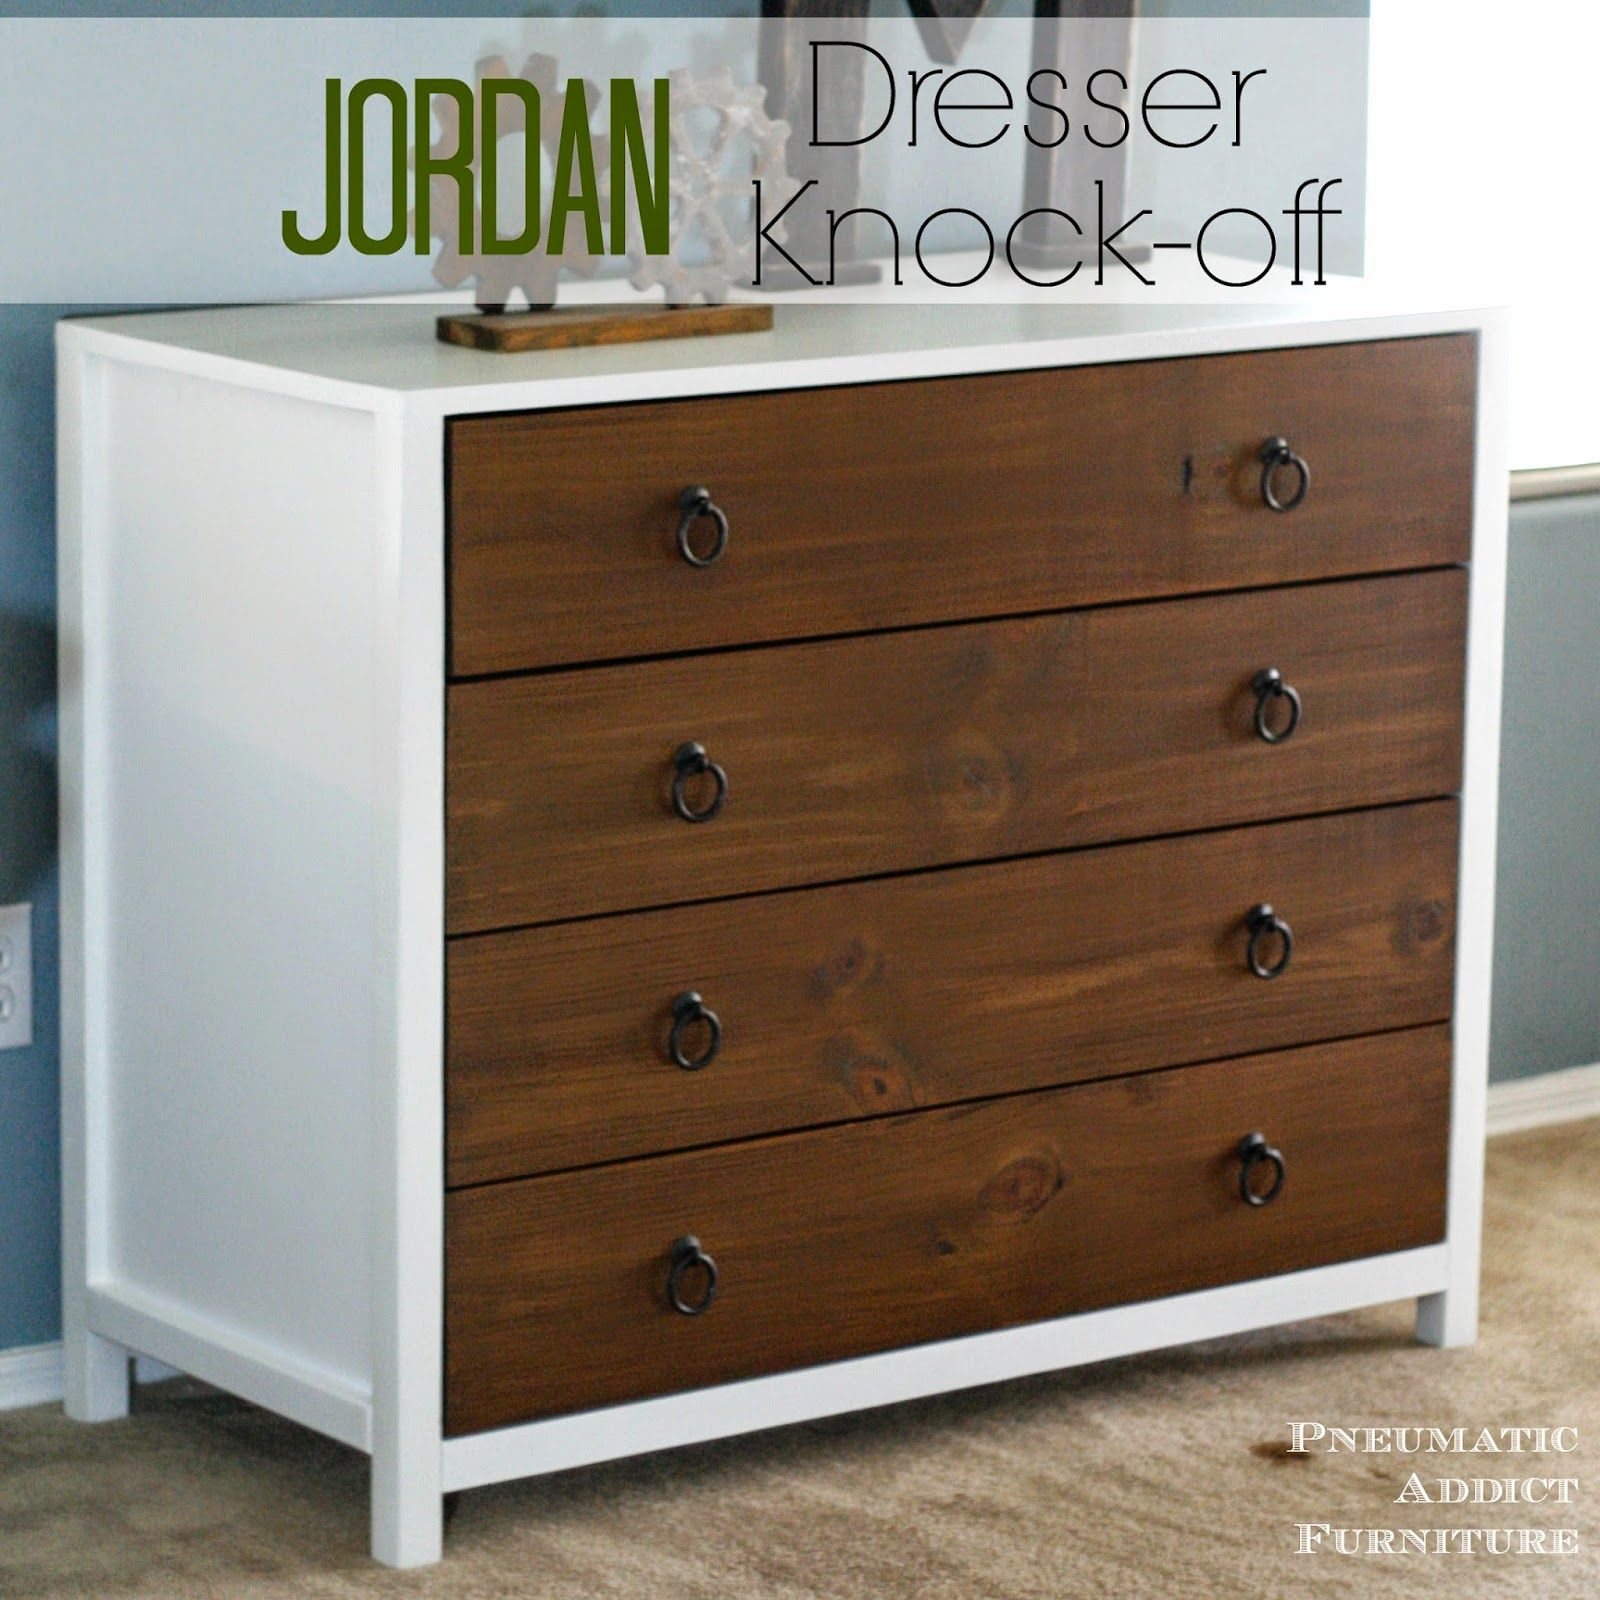 Make Your Own Pottery Barn Kids Jordan Dresser Knock Off.